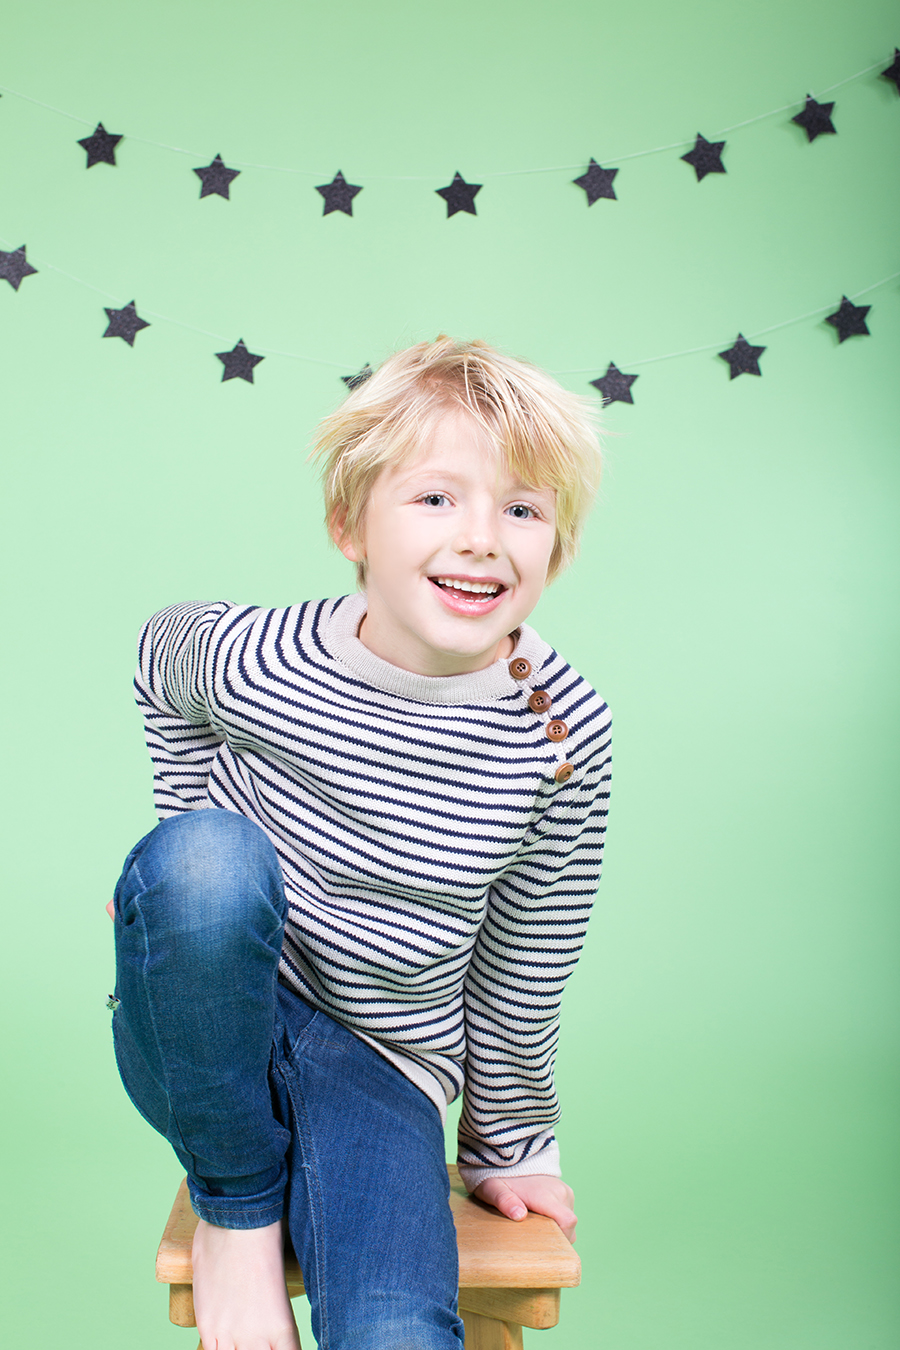 Kinderfotografie in Studio